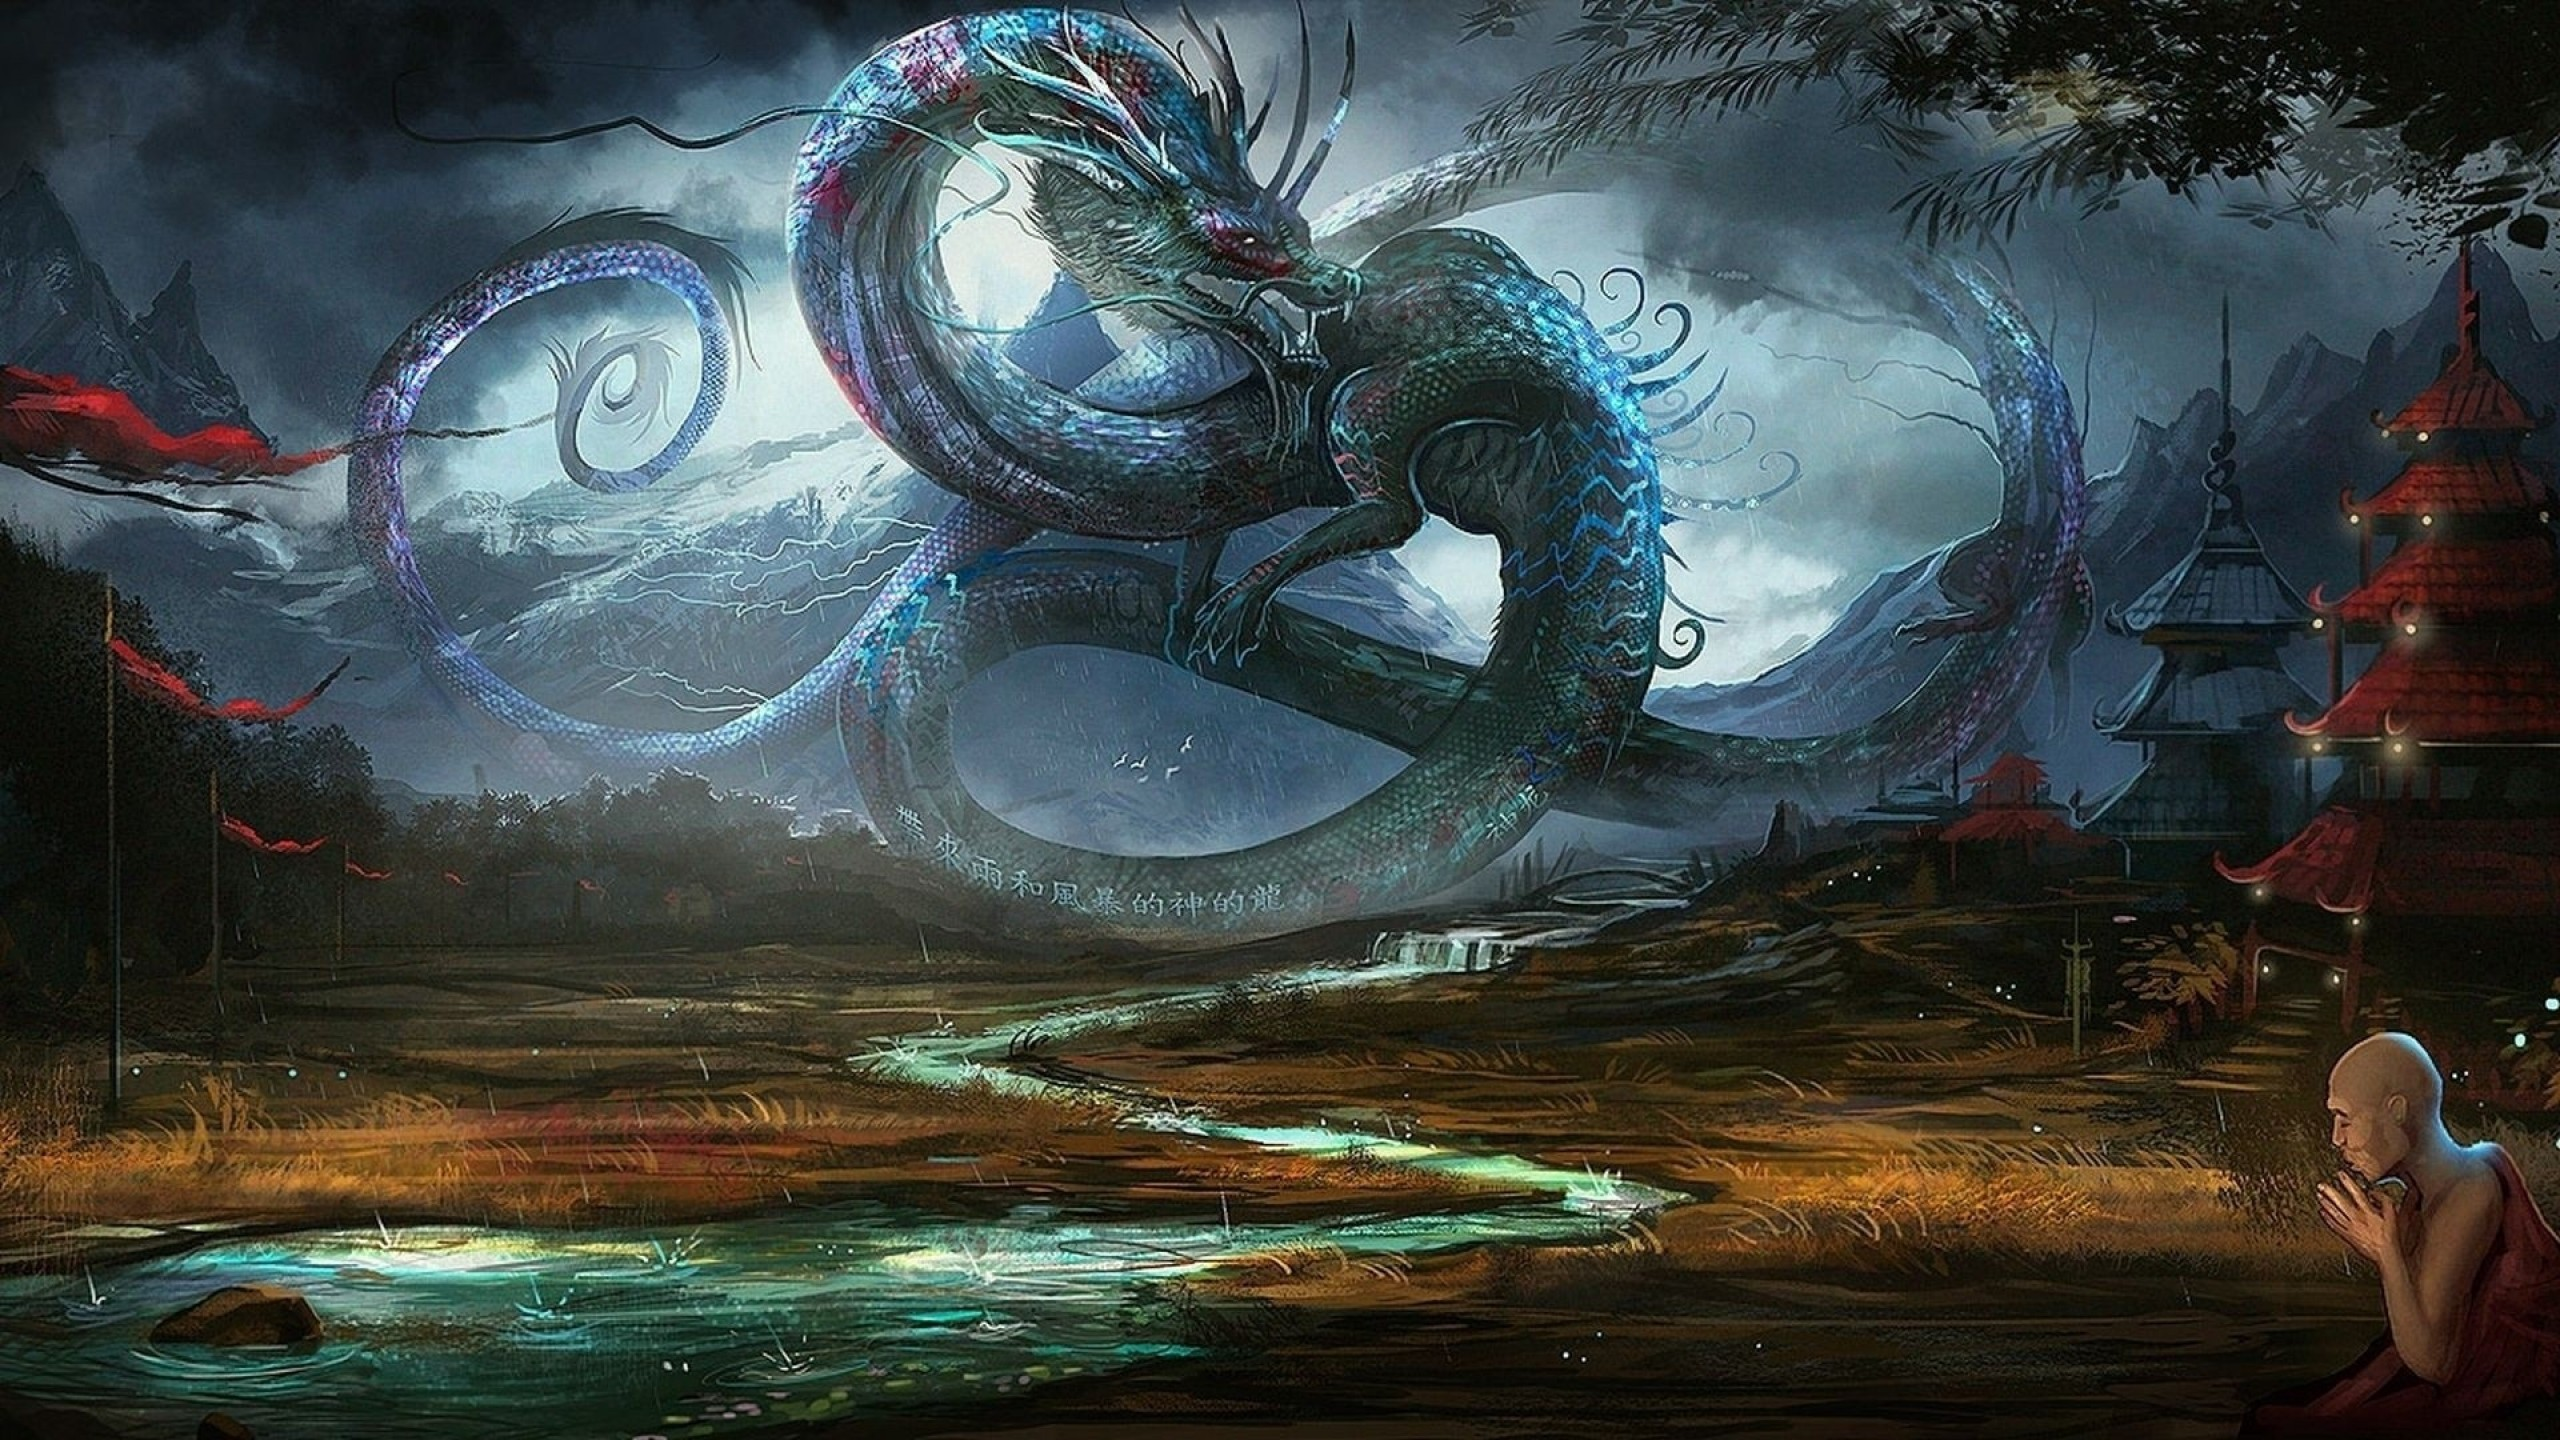 water dragons rain China legendary flags fantasy art artwork low resolution skies shaolin sea